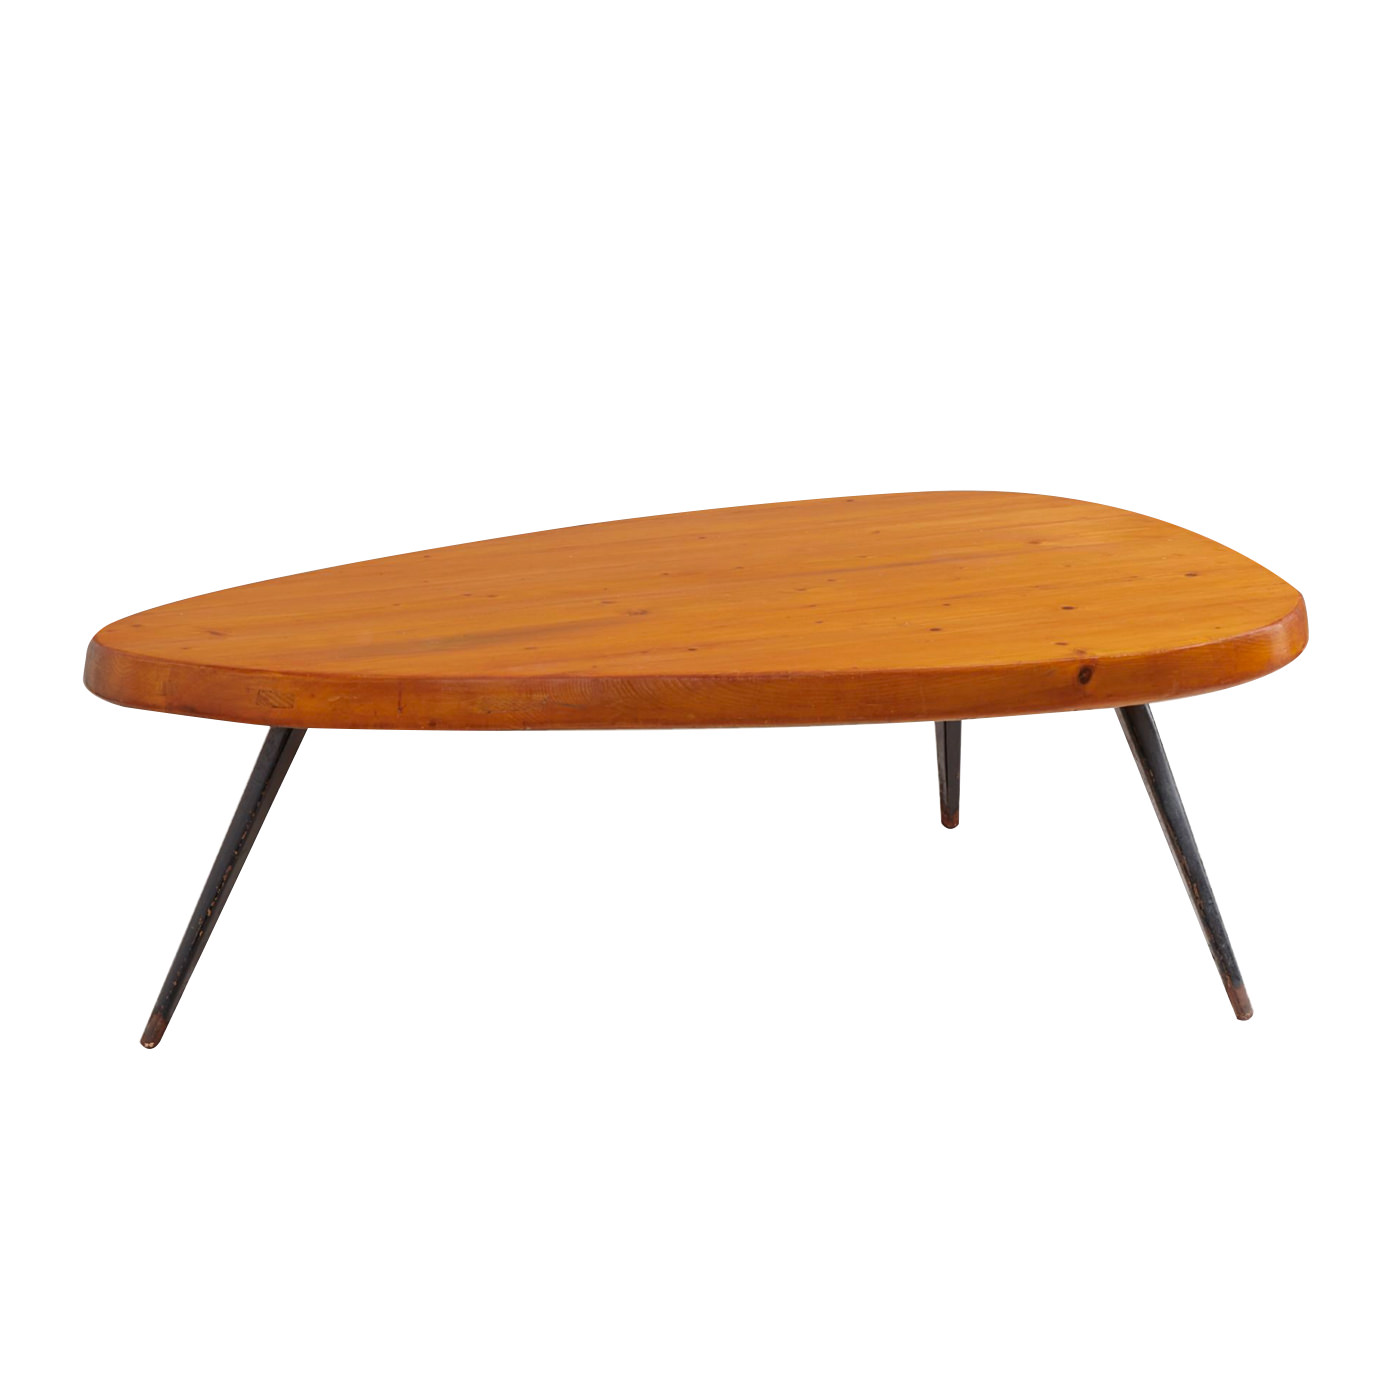 Charlotte Perriand Mobilier Table Basse 1956